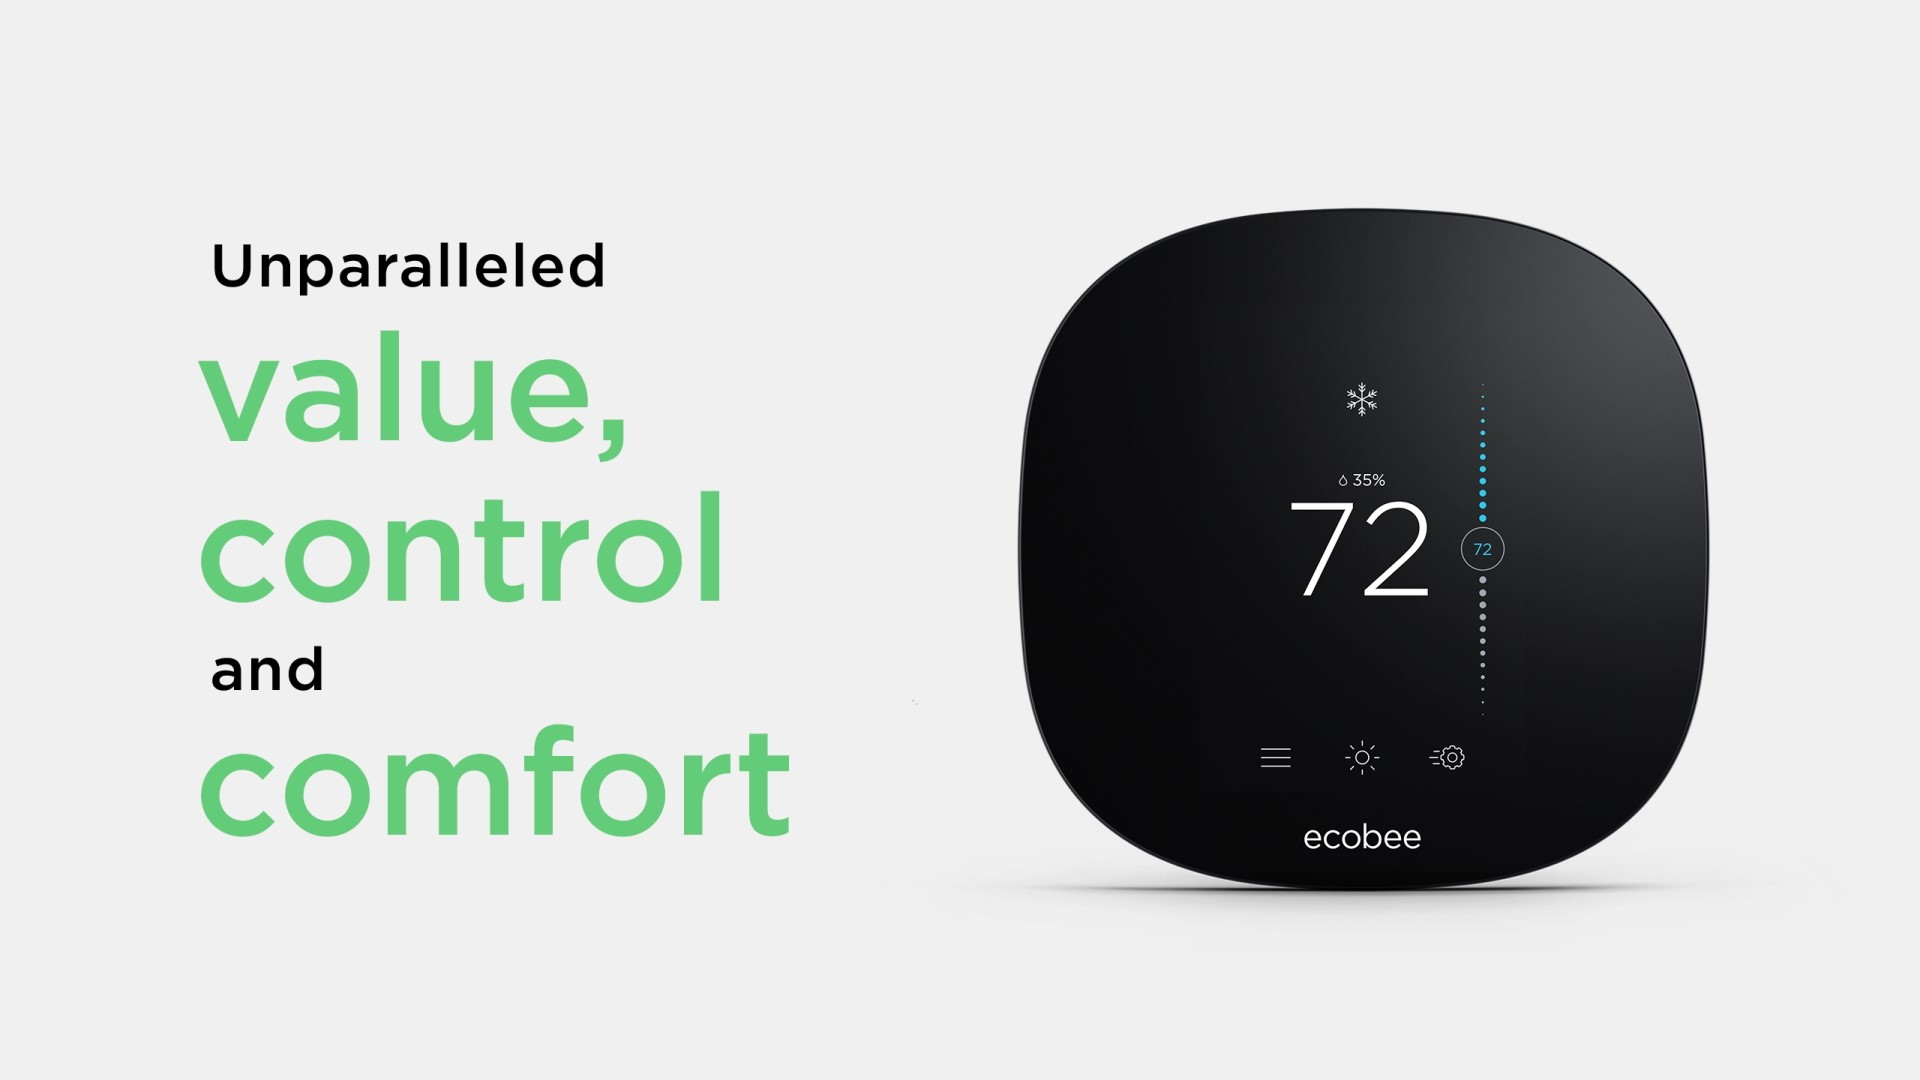 With the addition of the ecobee3 lite smart thermostat, Clayton is providing its customers access to the benefits and convenience that comes with ecobee smart thermostat technology.